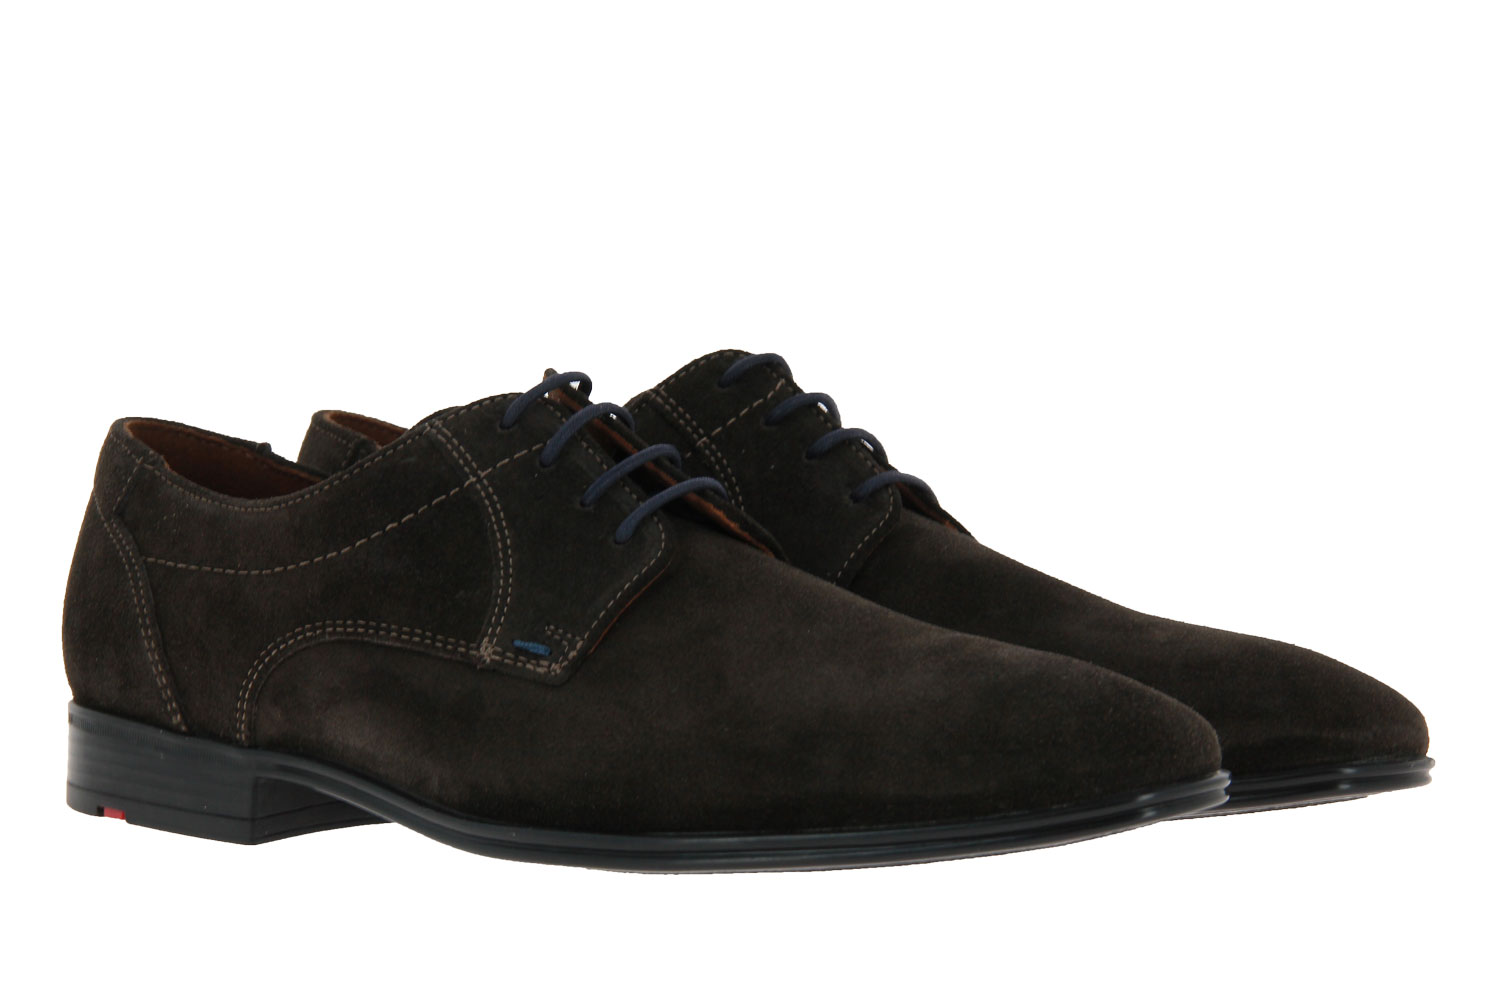 Lloyd lace-up OSMOND LIBRA SUEDE SEPIA